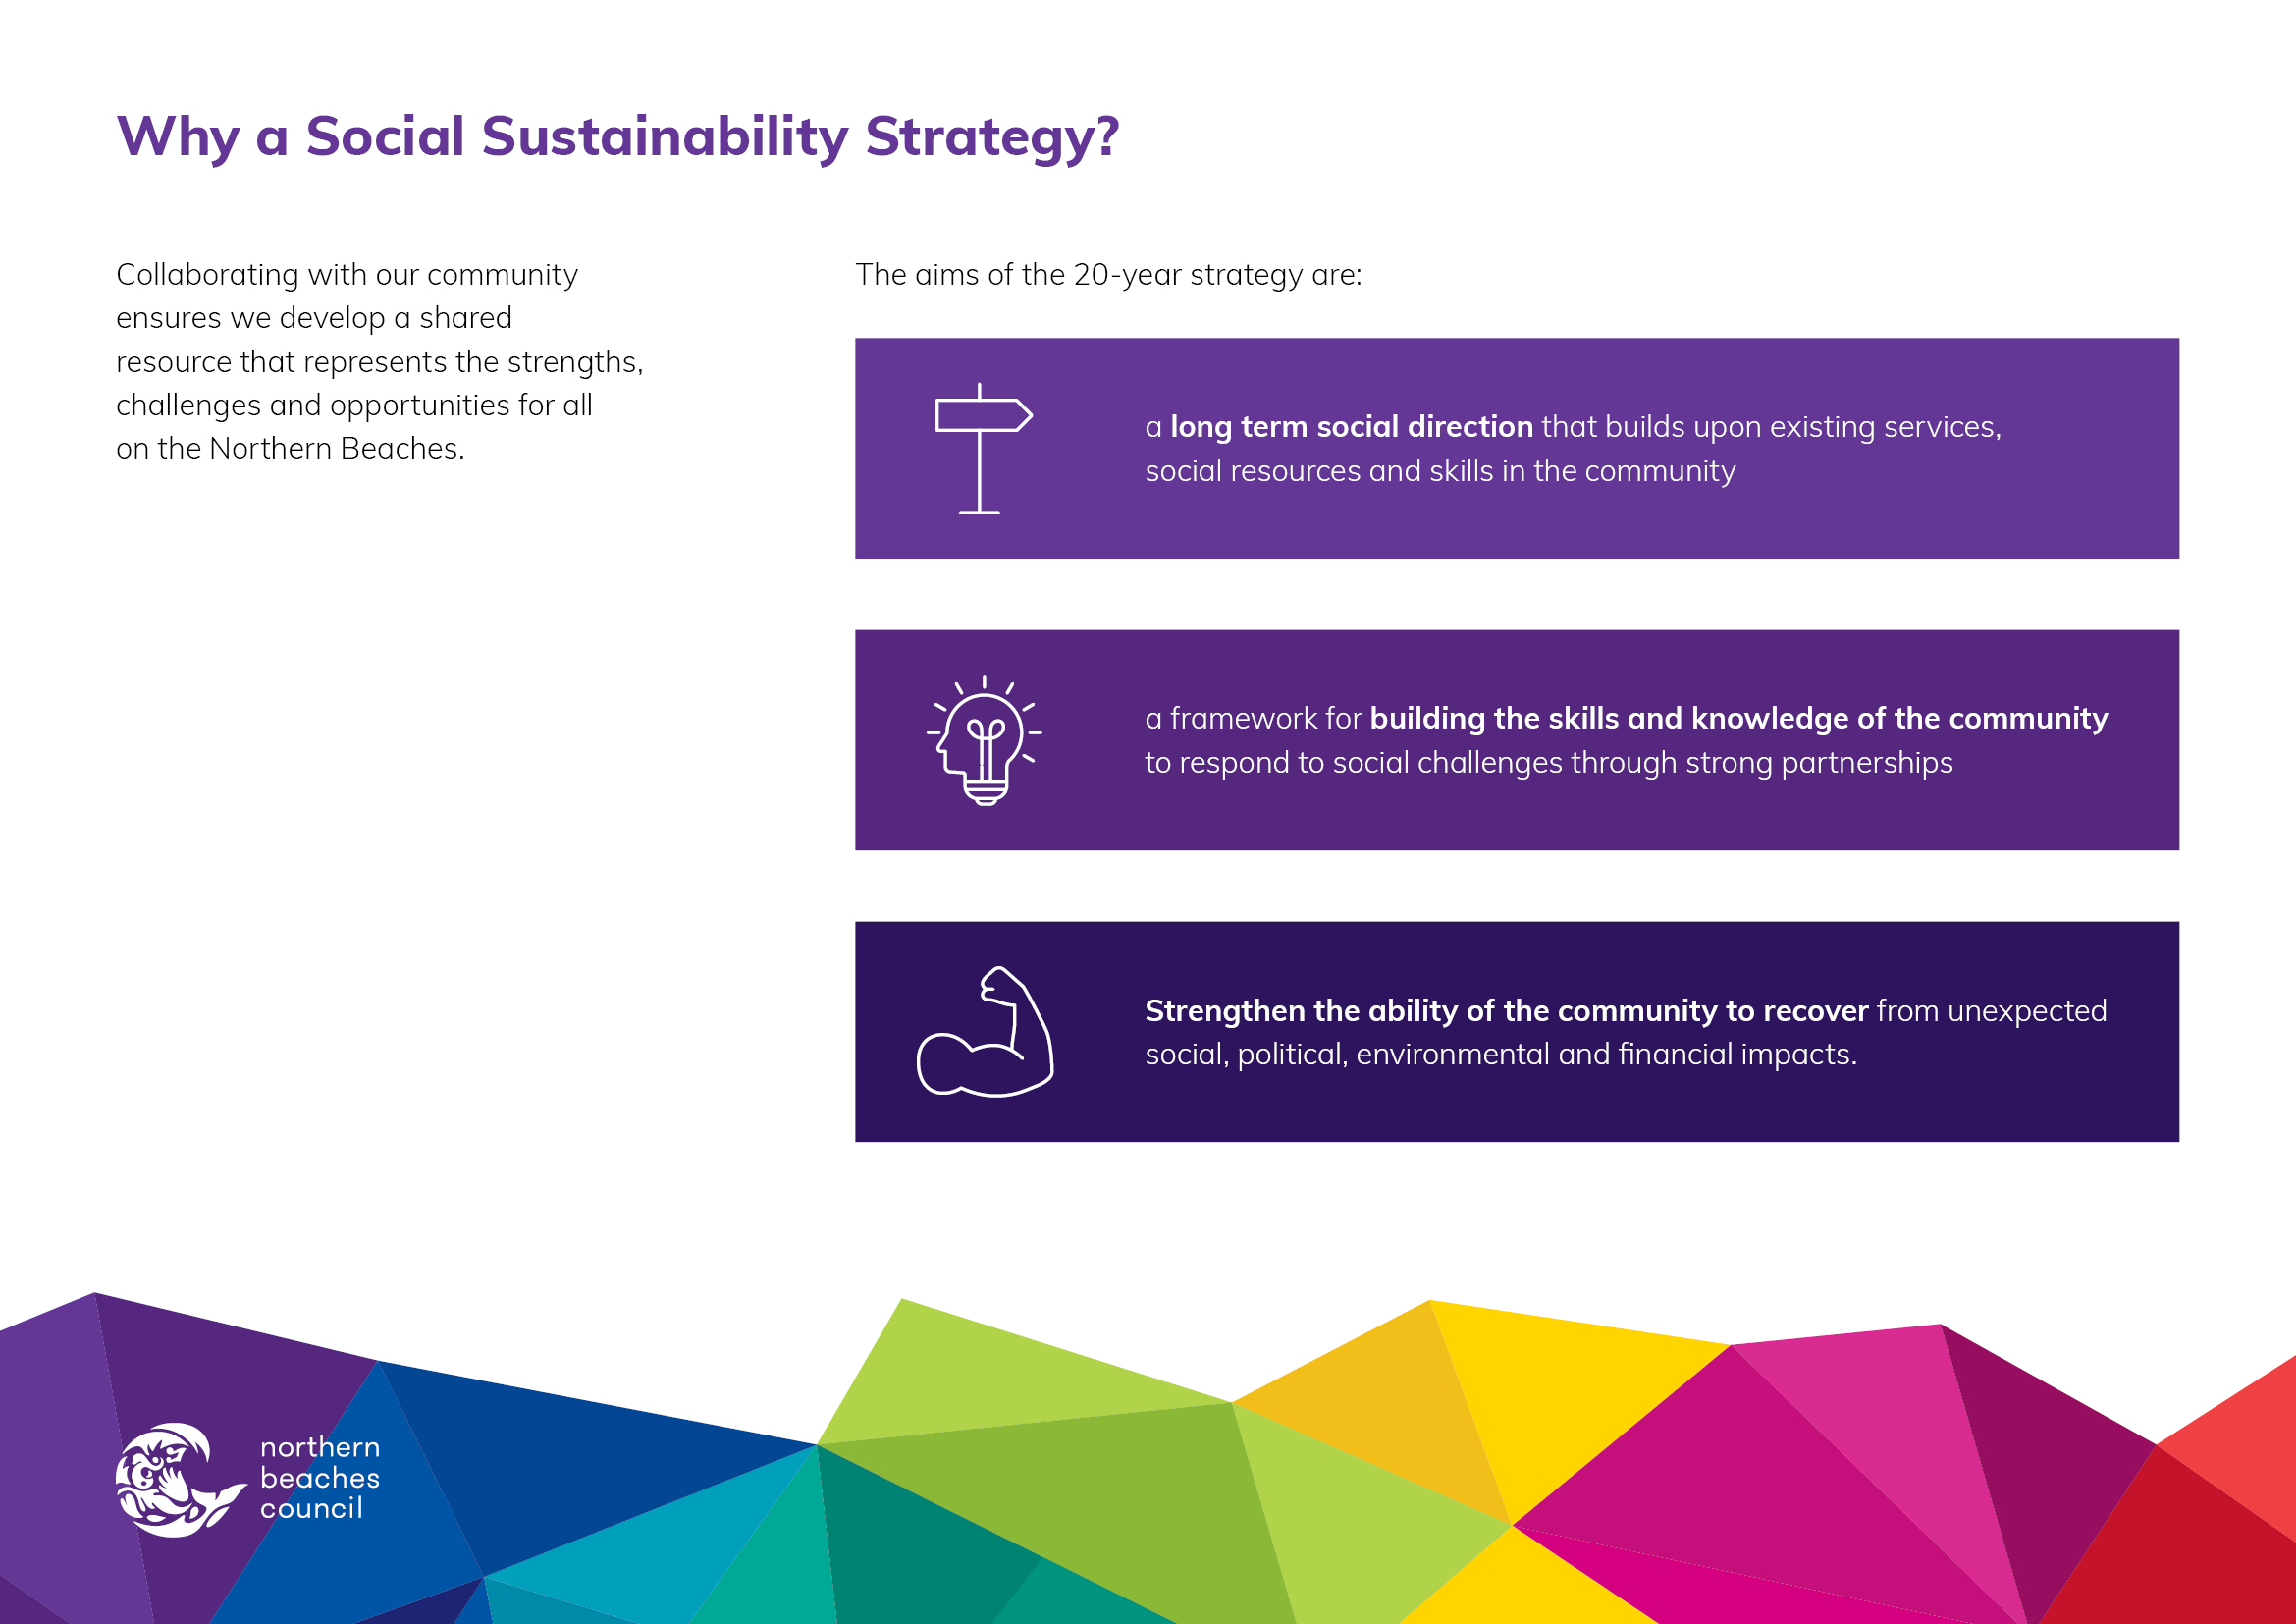 Why a Social Sustainability Strategy?